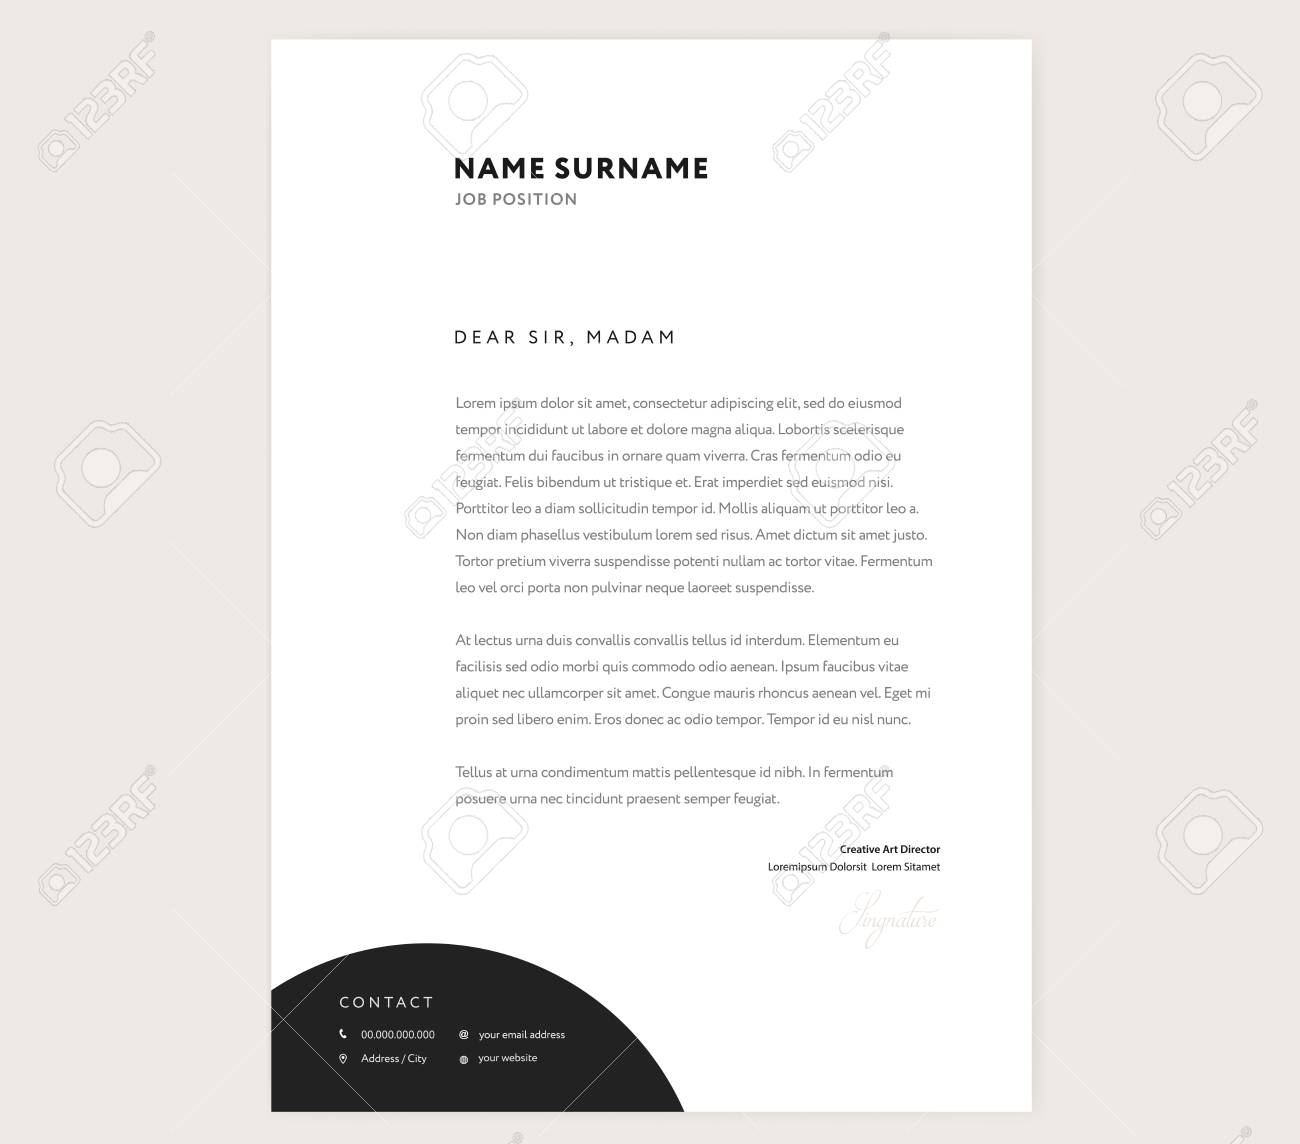 Elegant Letterhead Template Design In Minimalist Style With Icons Stock Vector